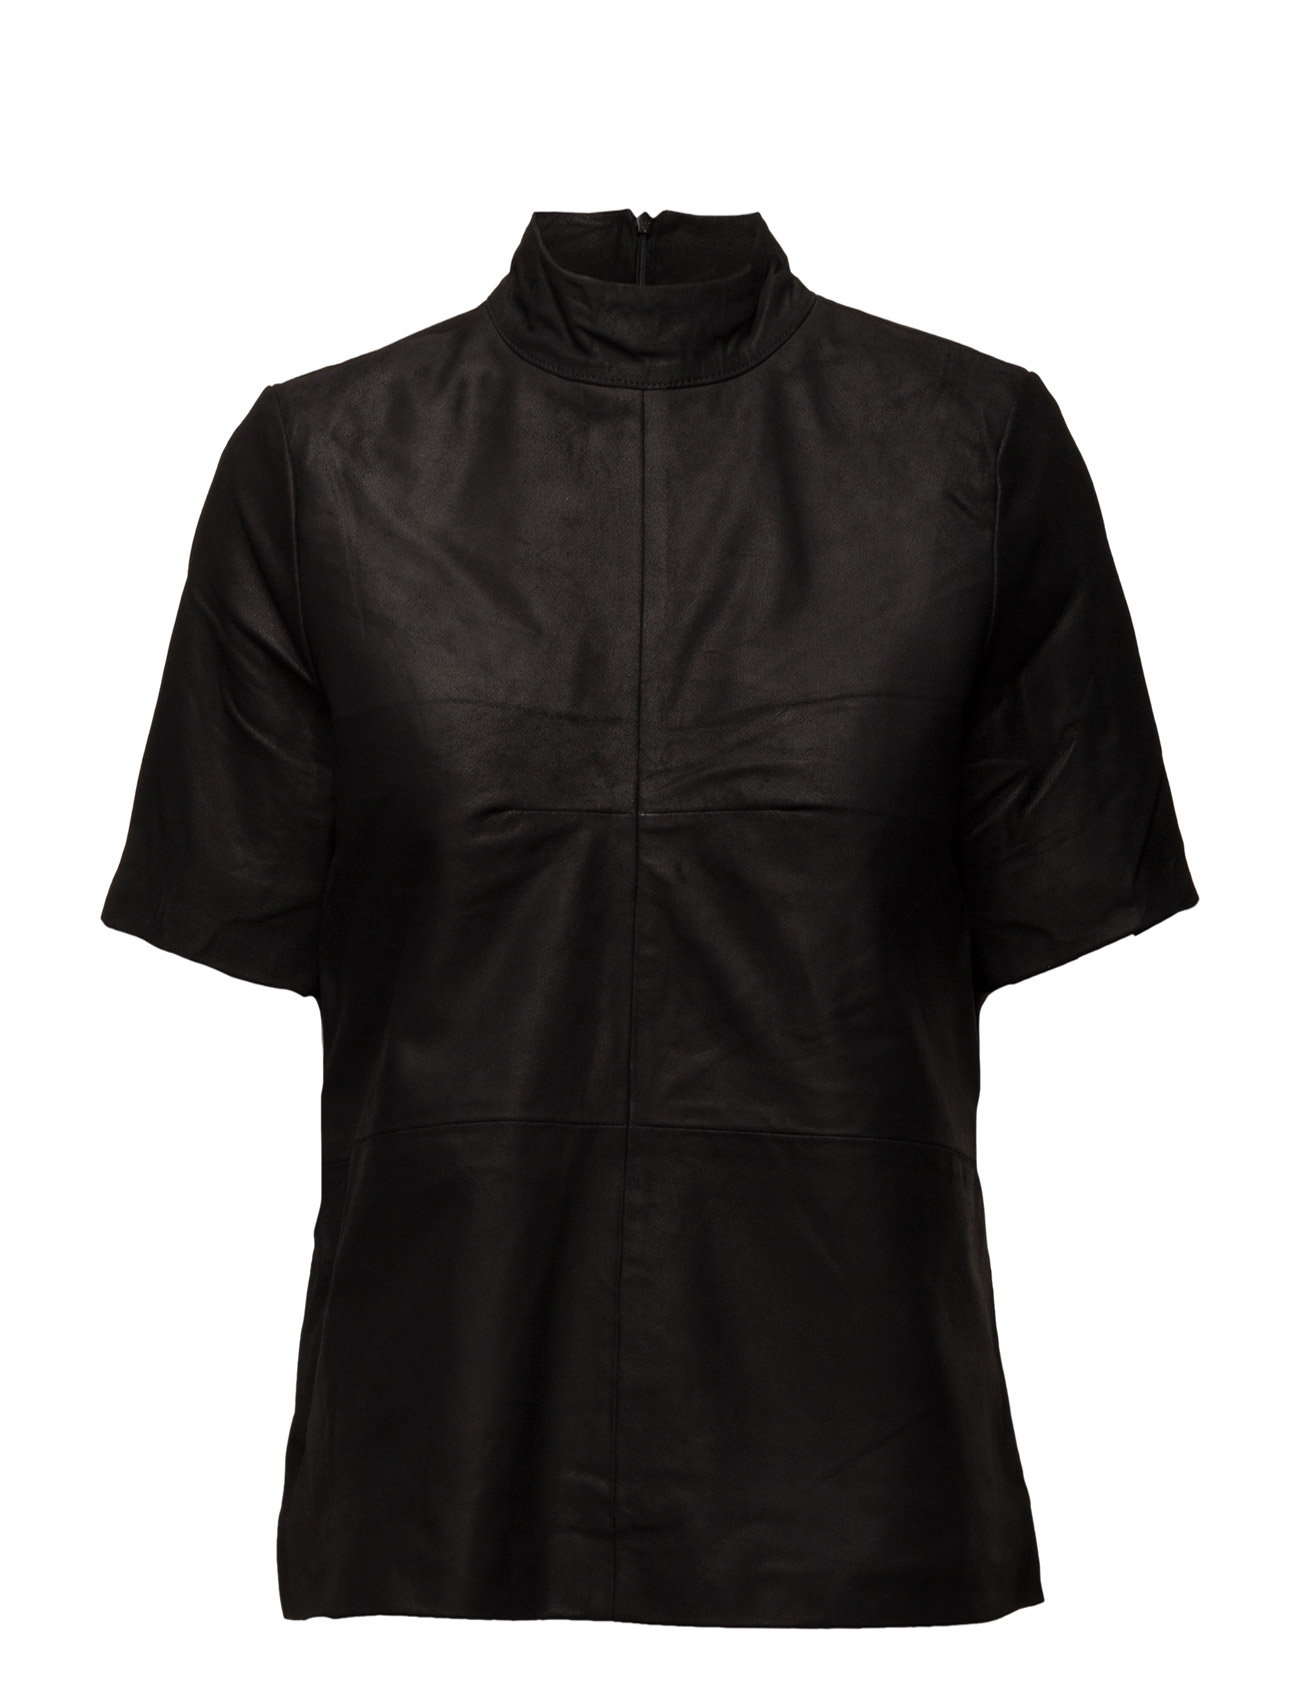 Sfjone Ss Leather Top Selected Femme Kortærmede til Damer i Sort